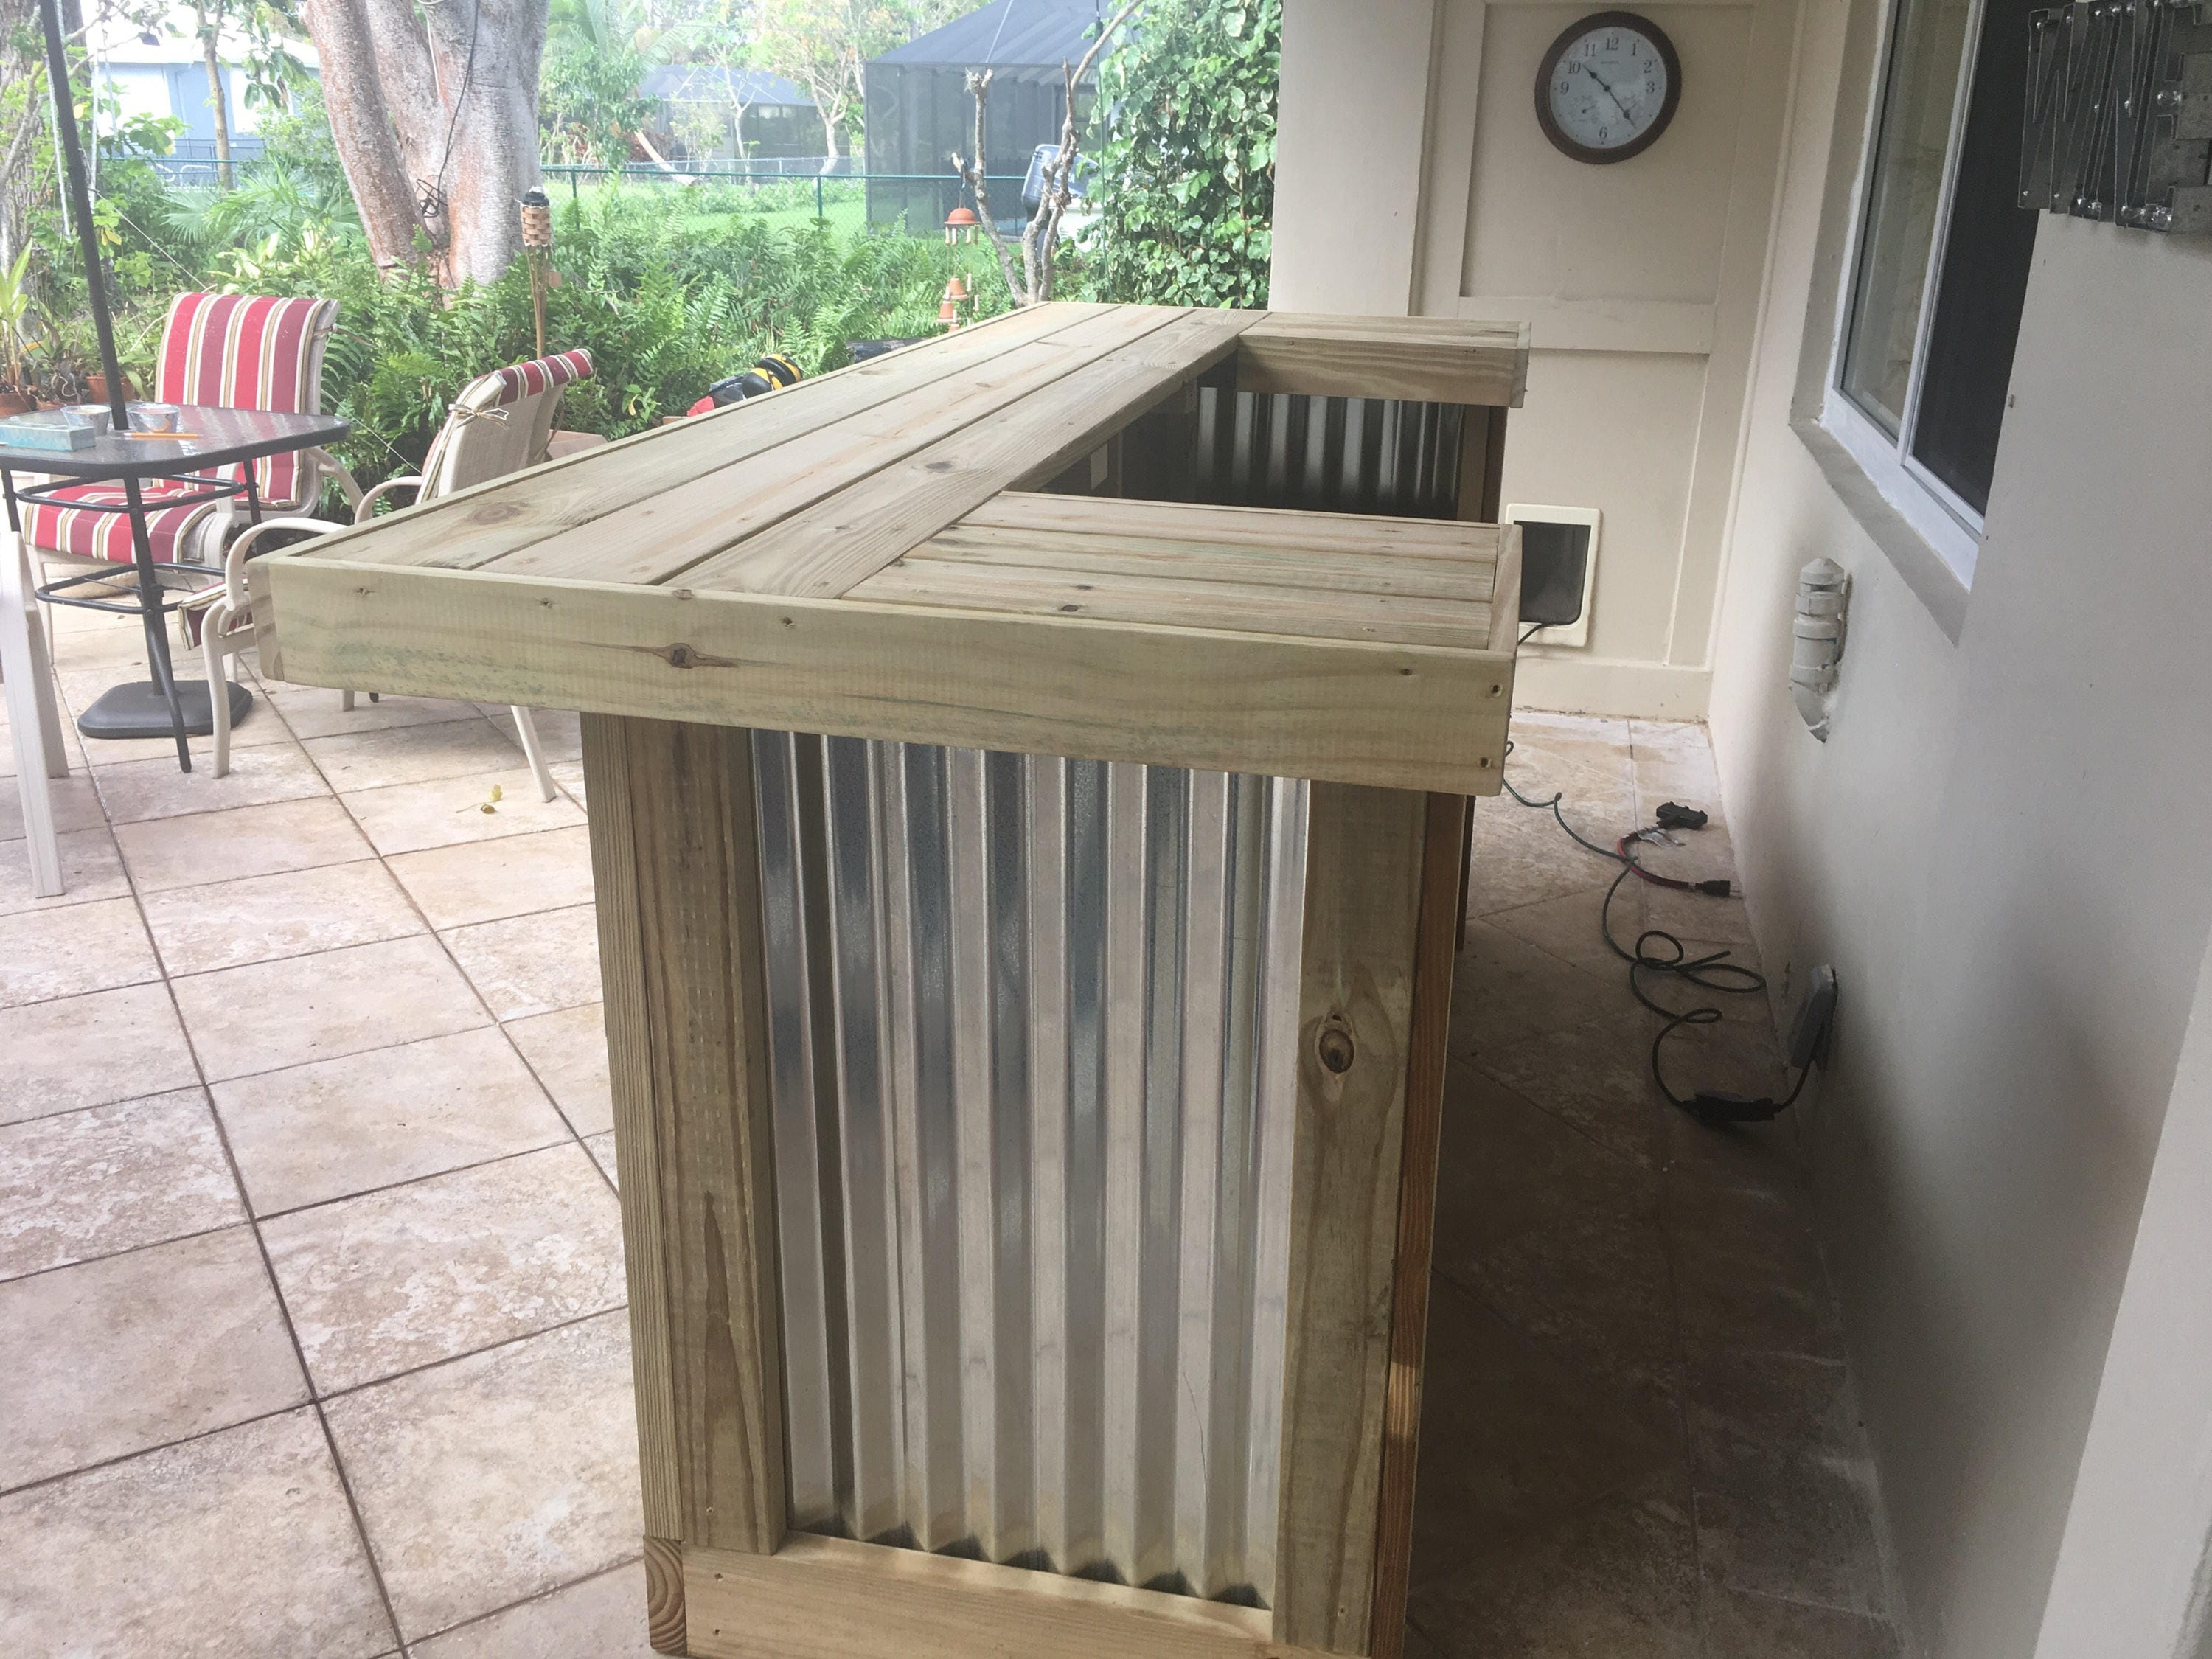 The thomas 3 39 x 8 39 x 3 39 two level rustic corrugated for U shaped outdoor bar